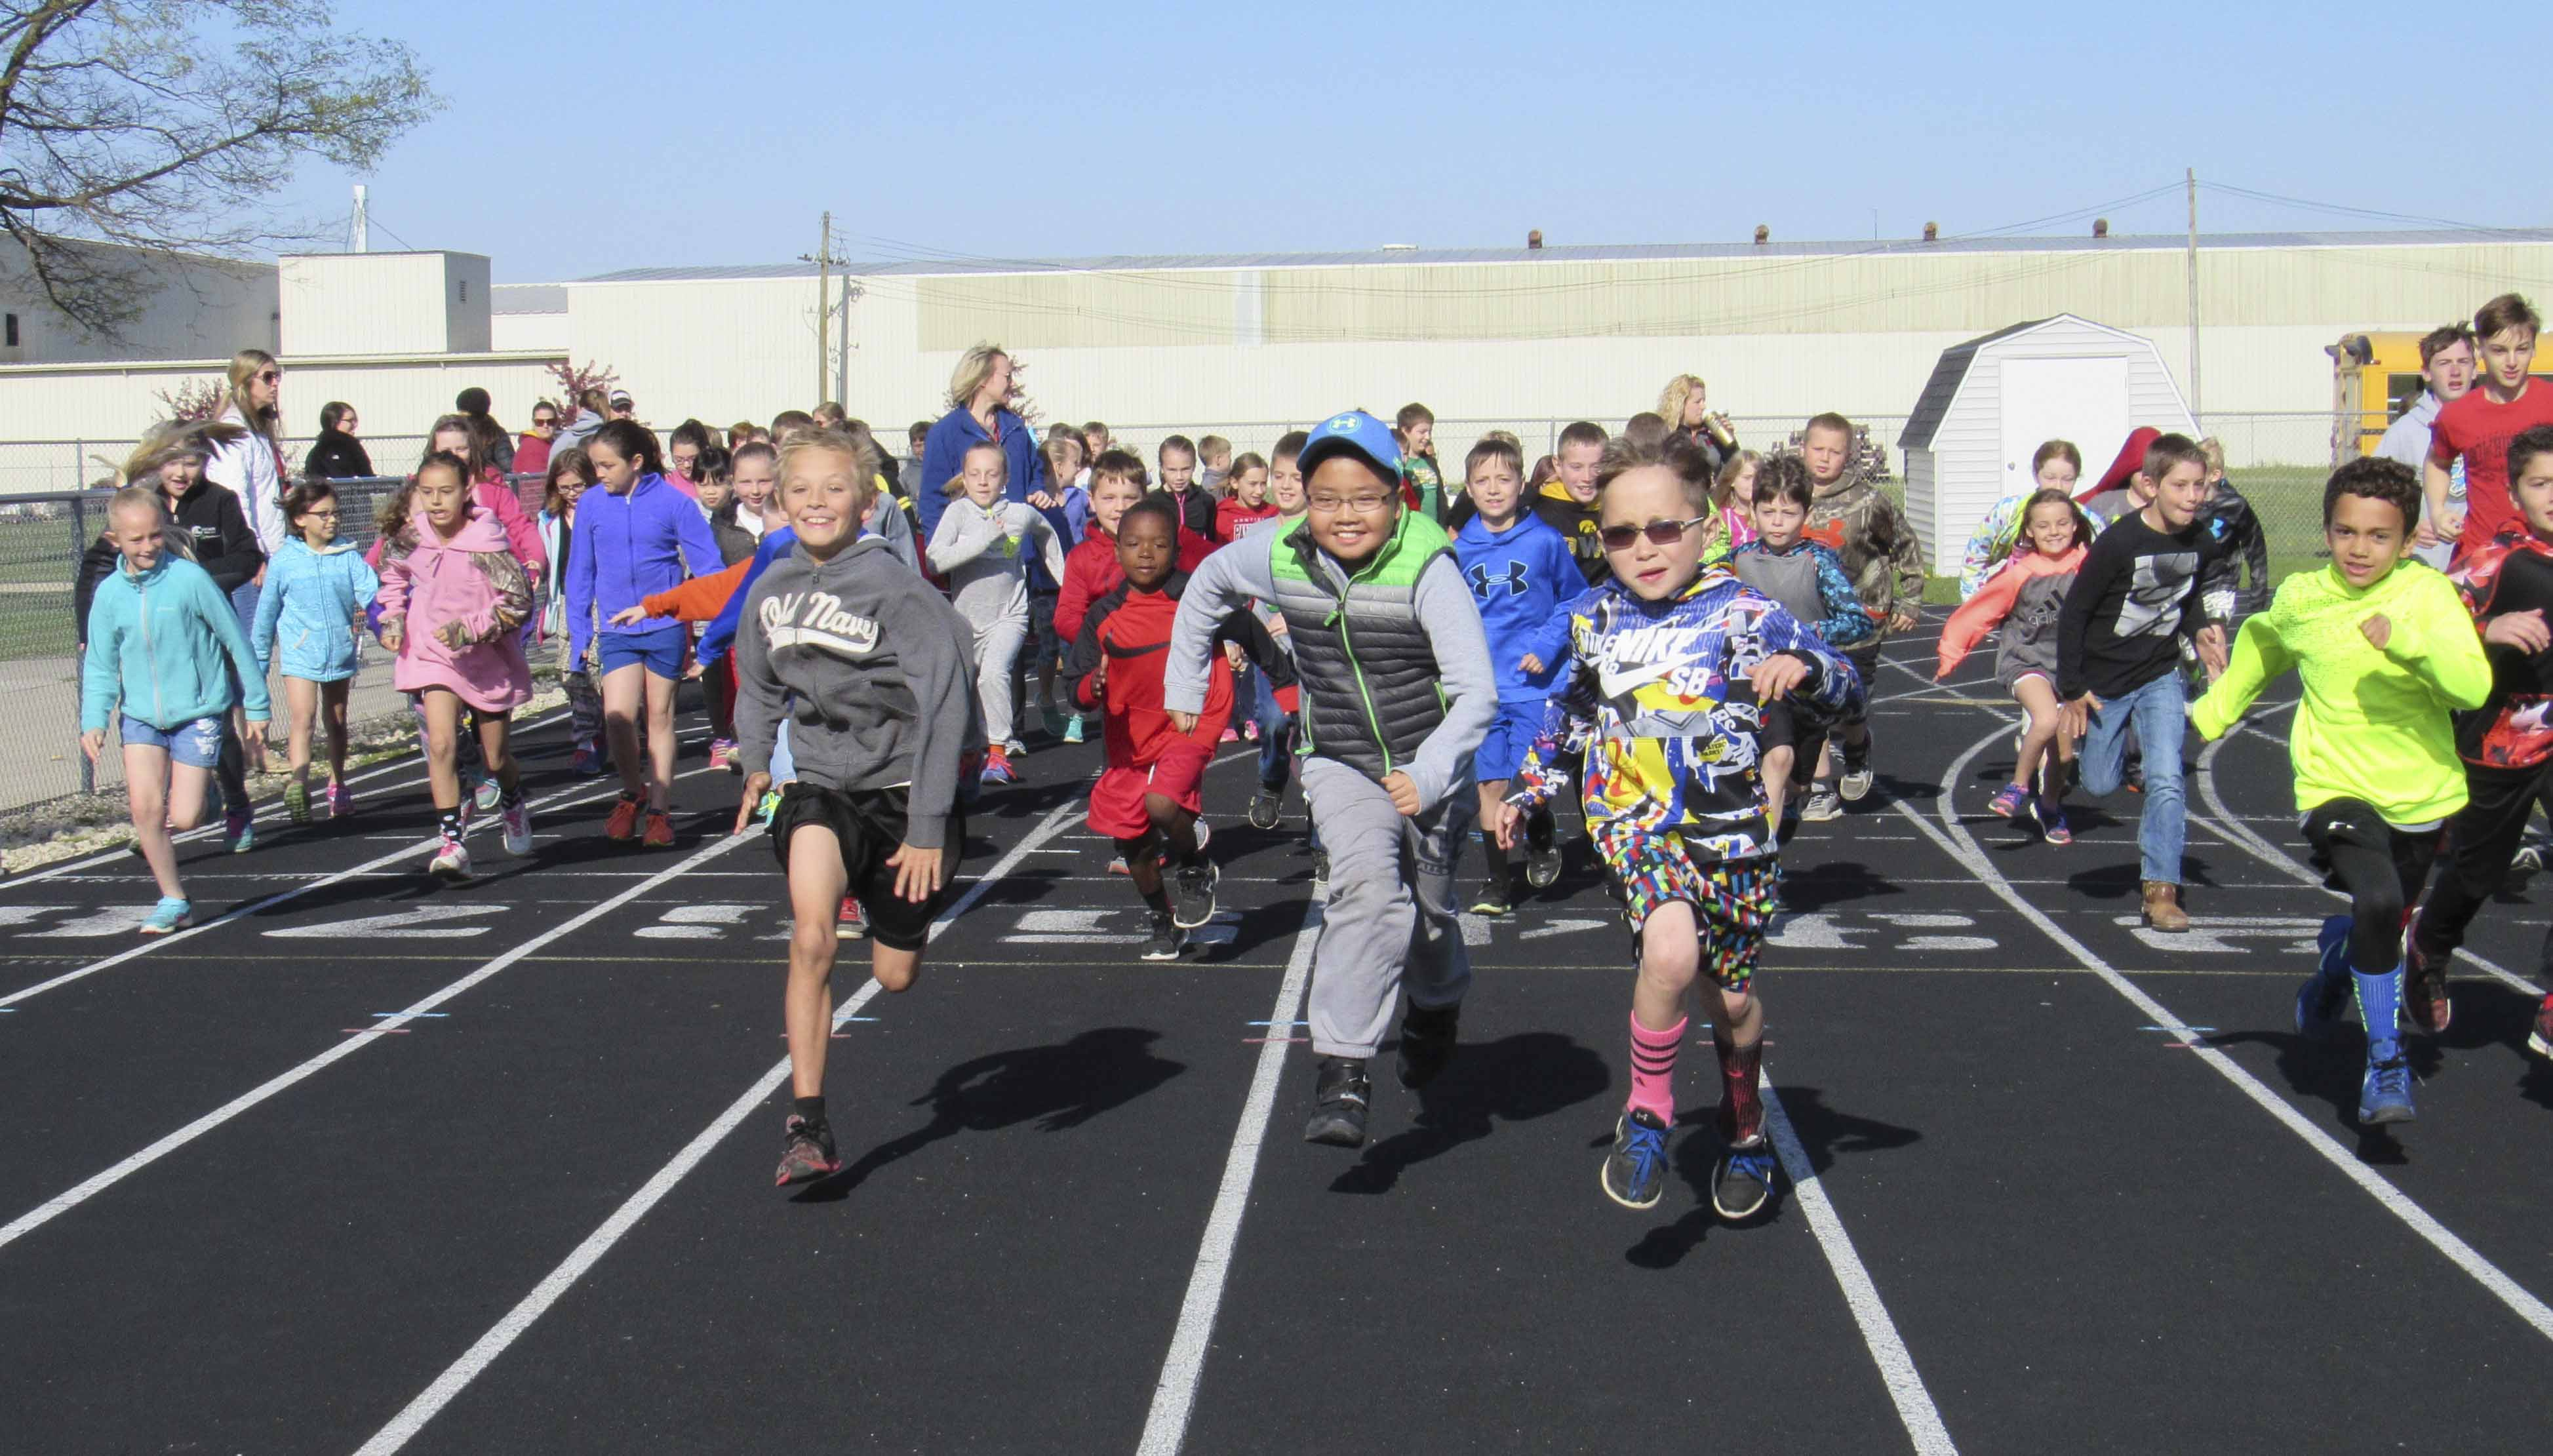 Third graders from Carpenter Elementary School take off on the track to kickoff the Monticello PTO Walk-a-thon on May 4. The event helps to encourage kids to live a healthy lifestyle. The walk-a-thon was held for grades pre-school through fourth. (Photos by Kim Brooks)